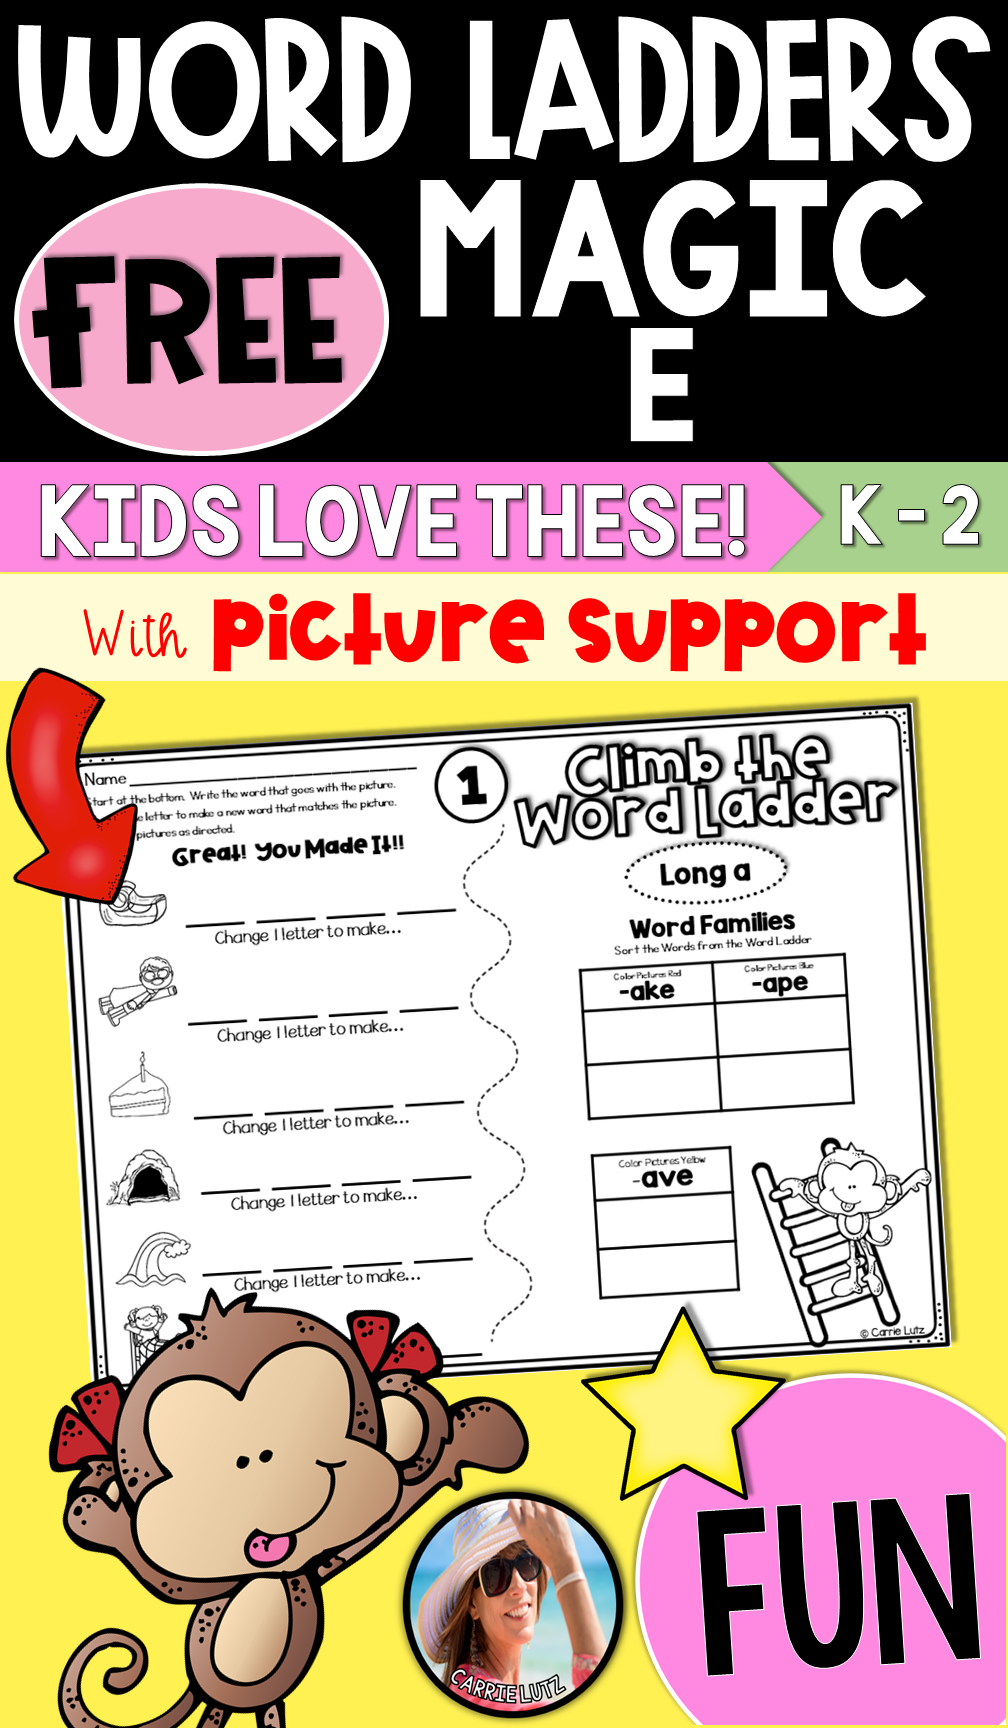 small resolution of This Free Magic e Printable Worksheet / Activity makes learning FUN for  Kids in Kindergarten and First Grade. Ph…   Word ladders